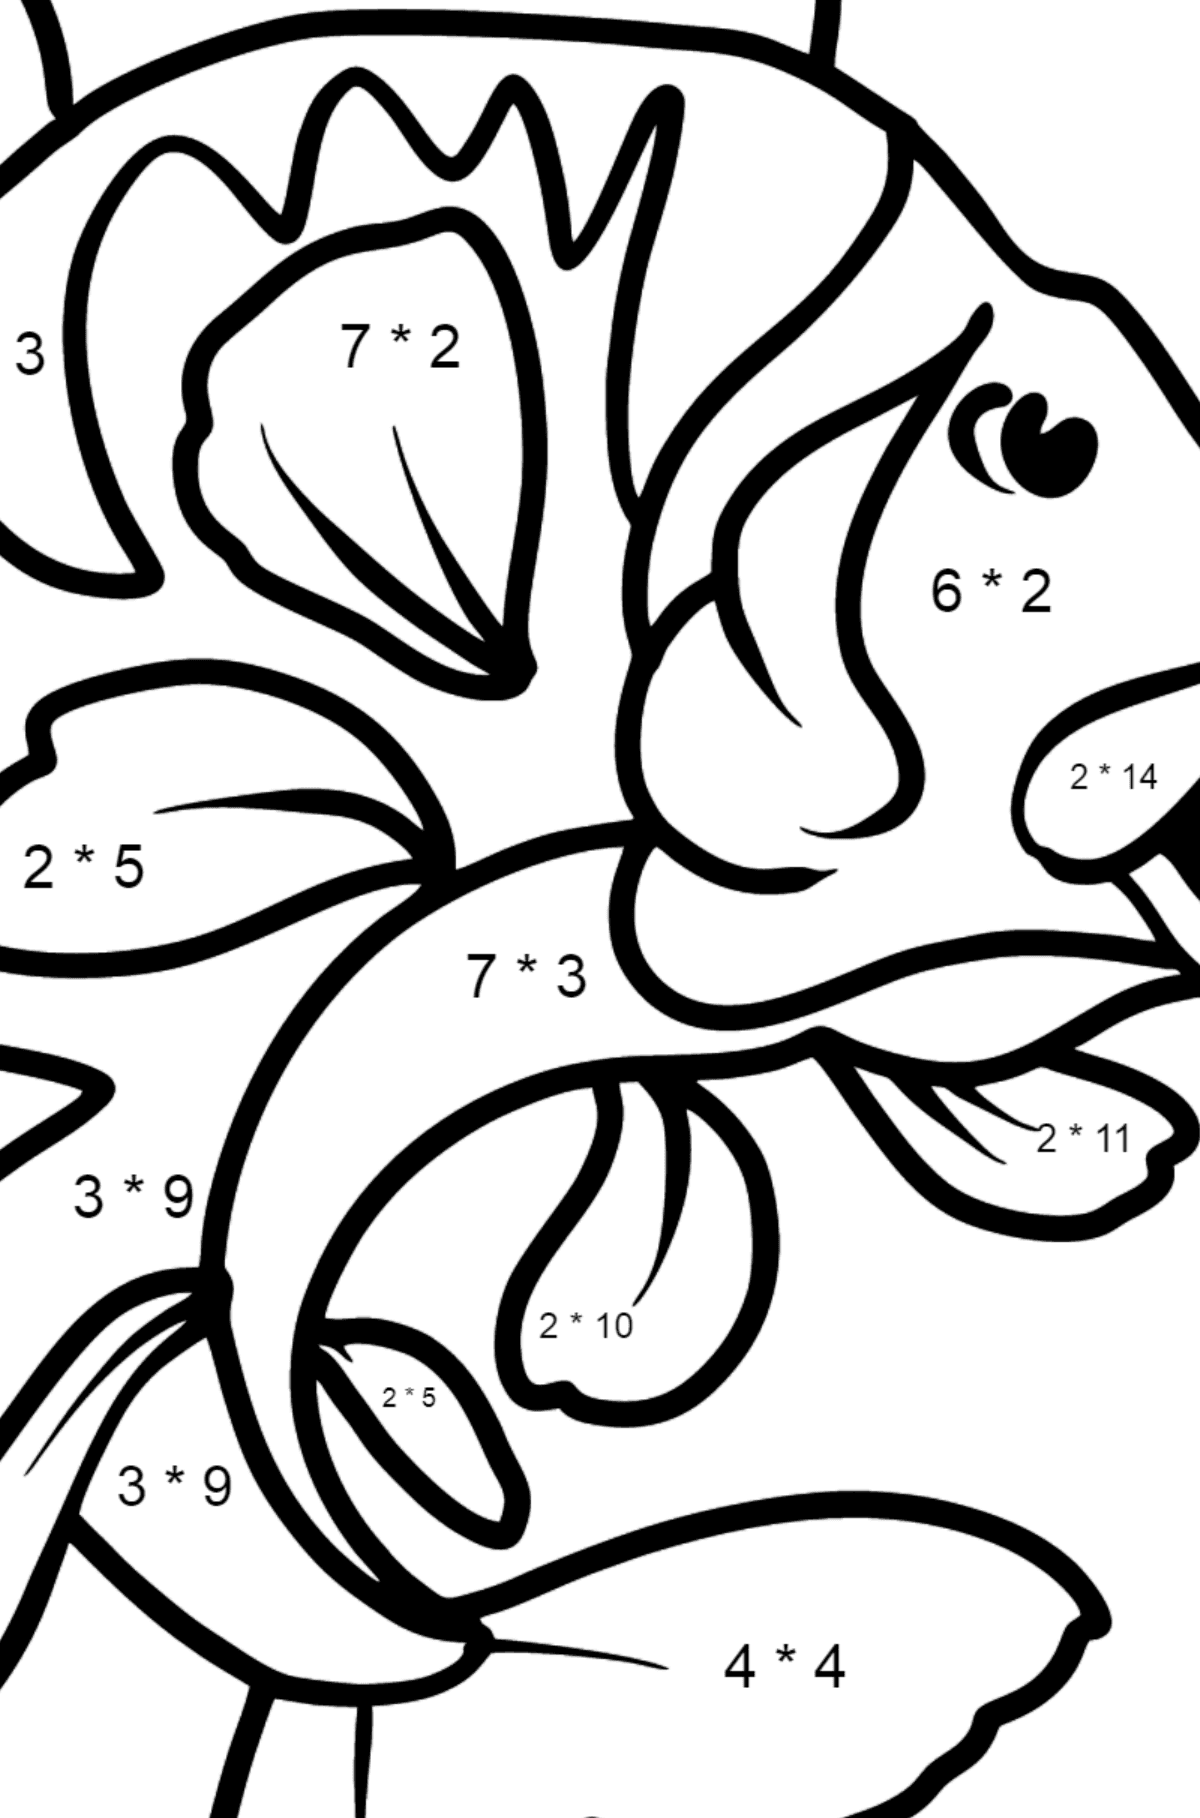 Perch coloring page - Math Coloring - Multiplication for Kids